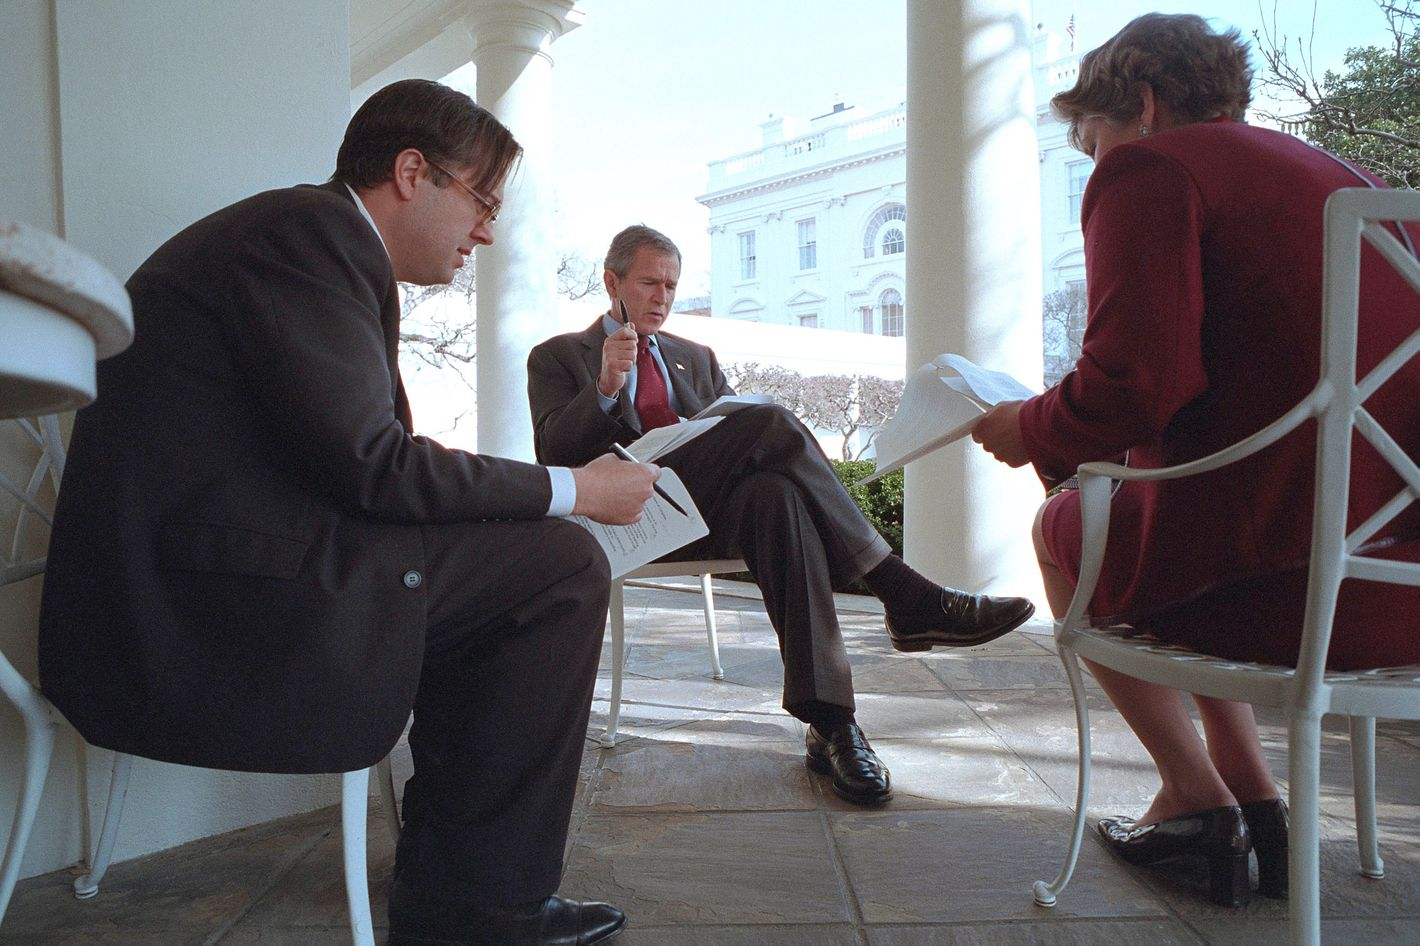 President George W. Bush prepares for his State of the Union Speech with Karen Hughes, Counselor to the President, and Michael Gerson, Director of Presidential Speech Writing, outside the Oval Office January 29, 2002 in Washington DC.